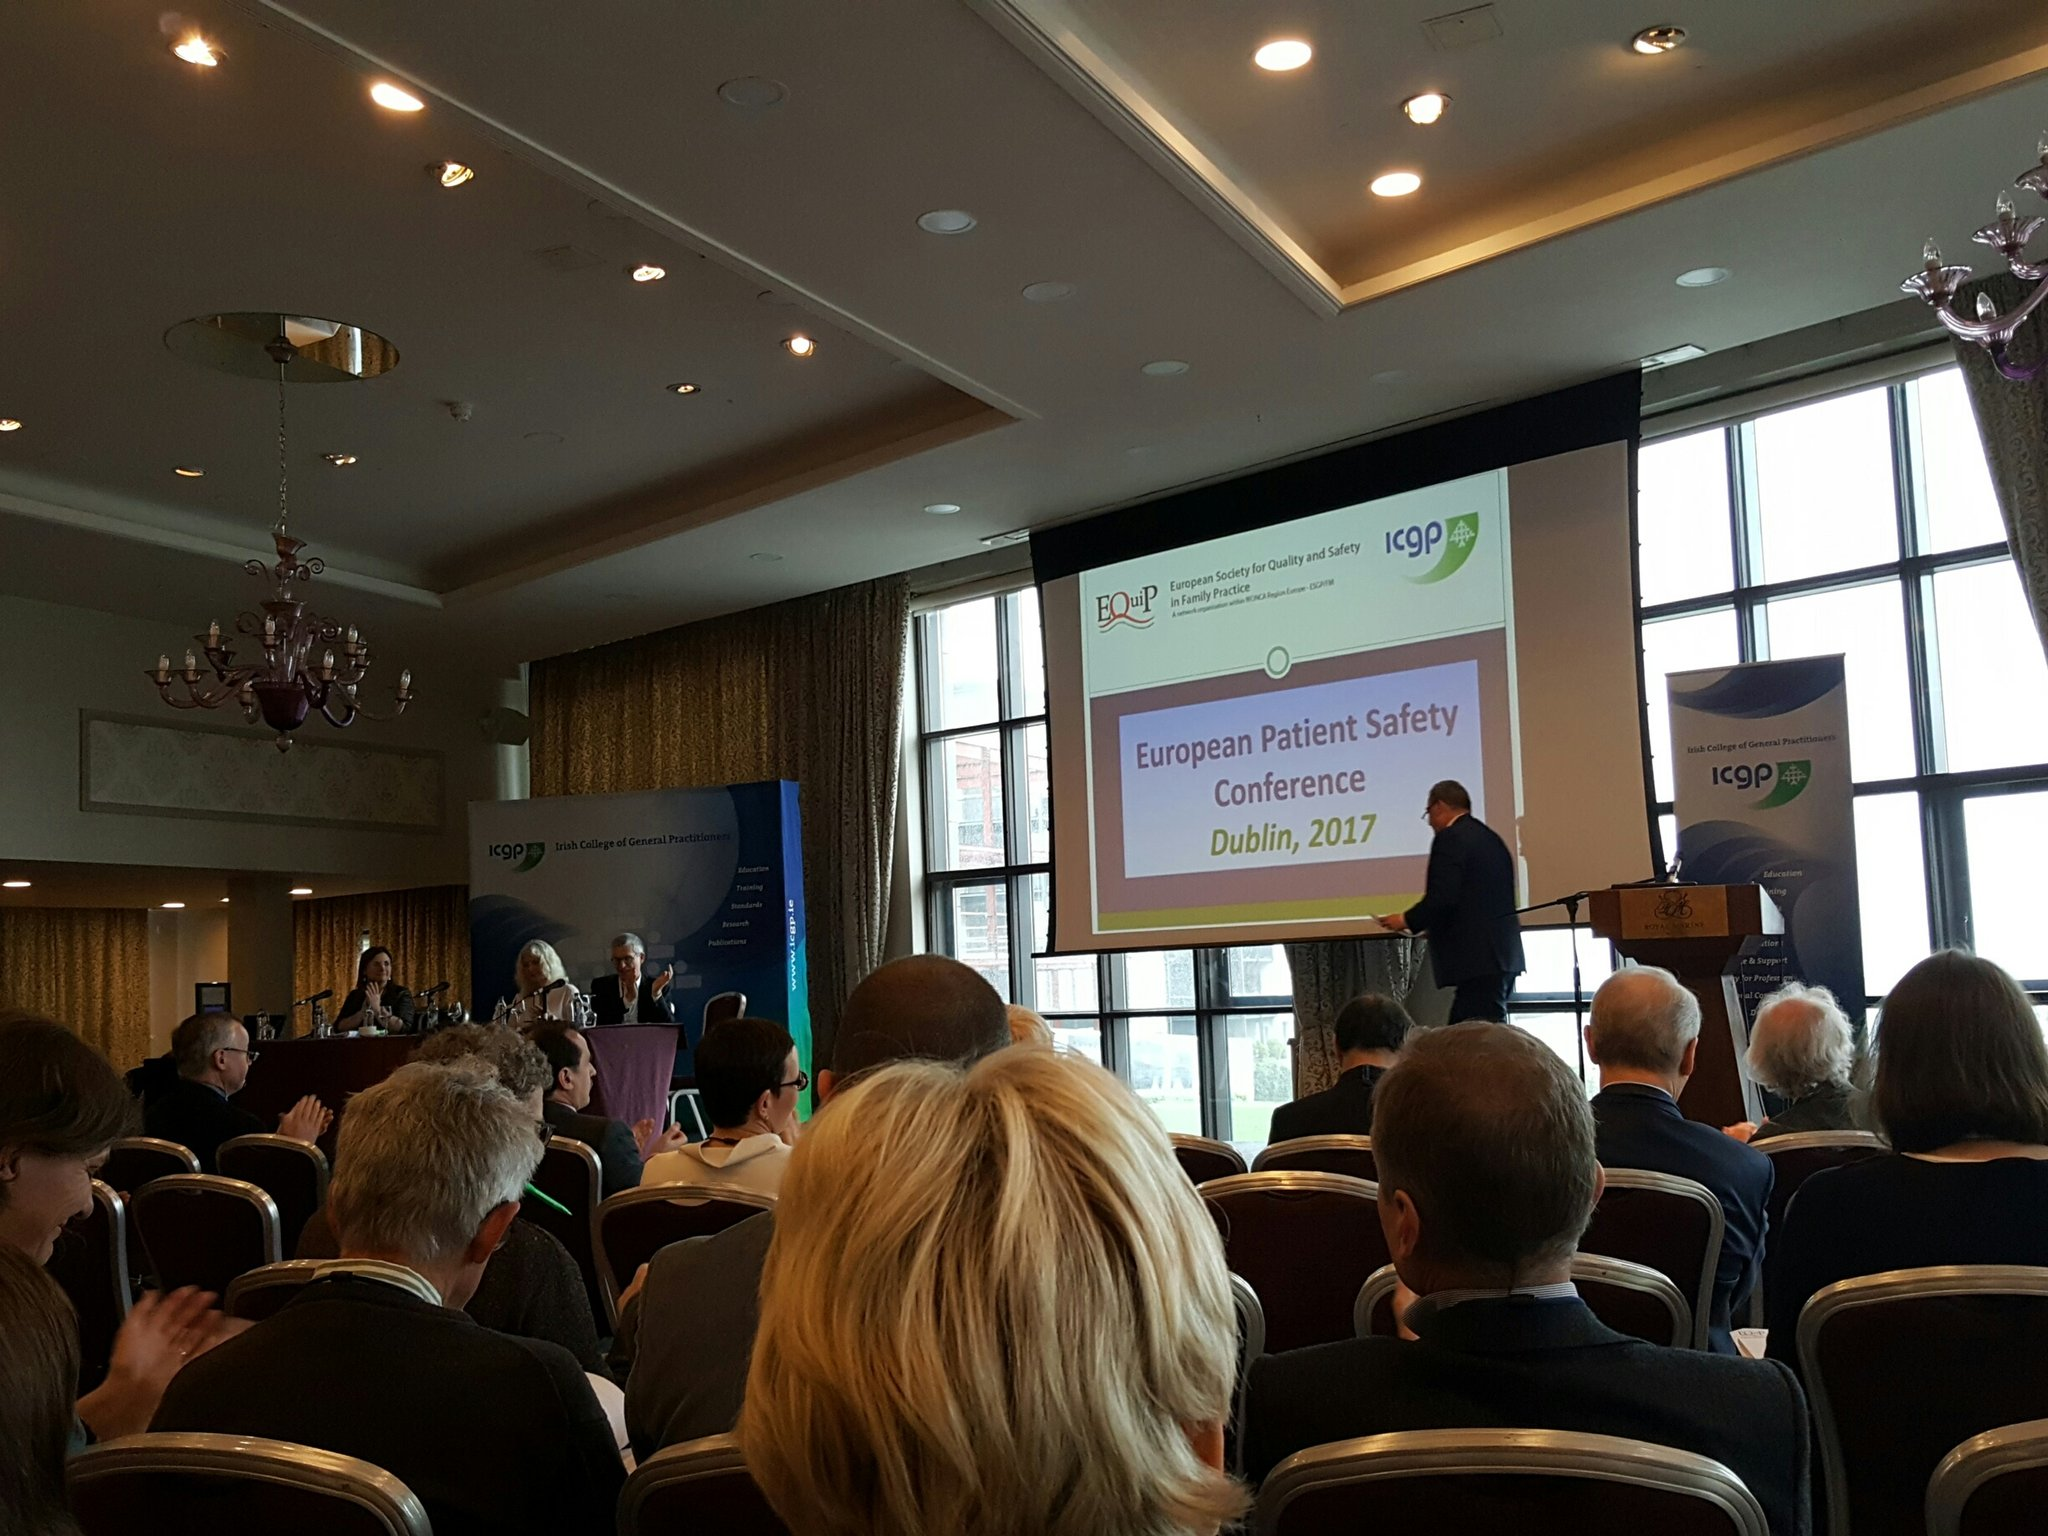 Let's go for patient safety with EquiP and keep improving our safety culture  #EQUIPDublin2017 https://t.co/iSU4pJSR2a